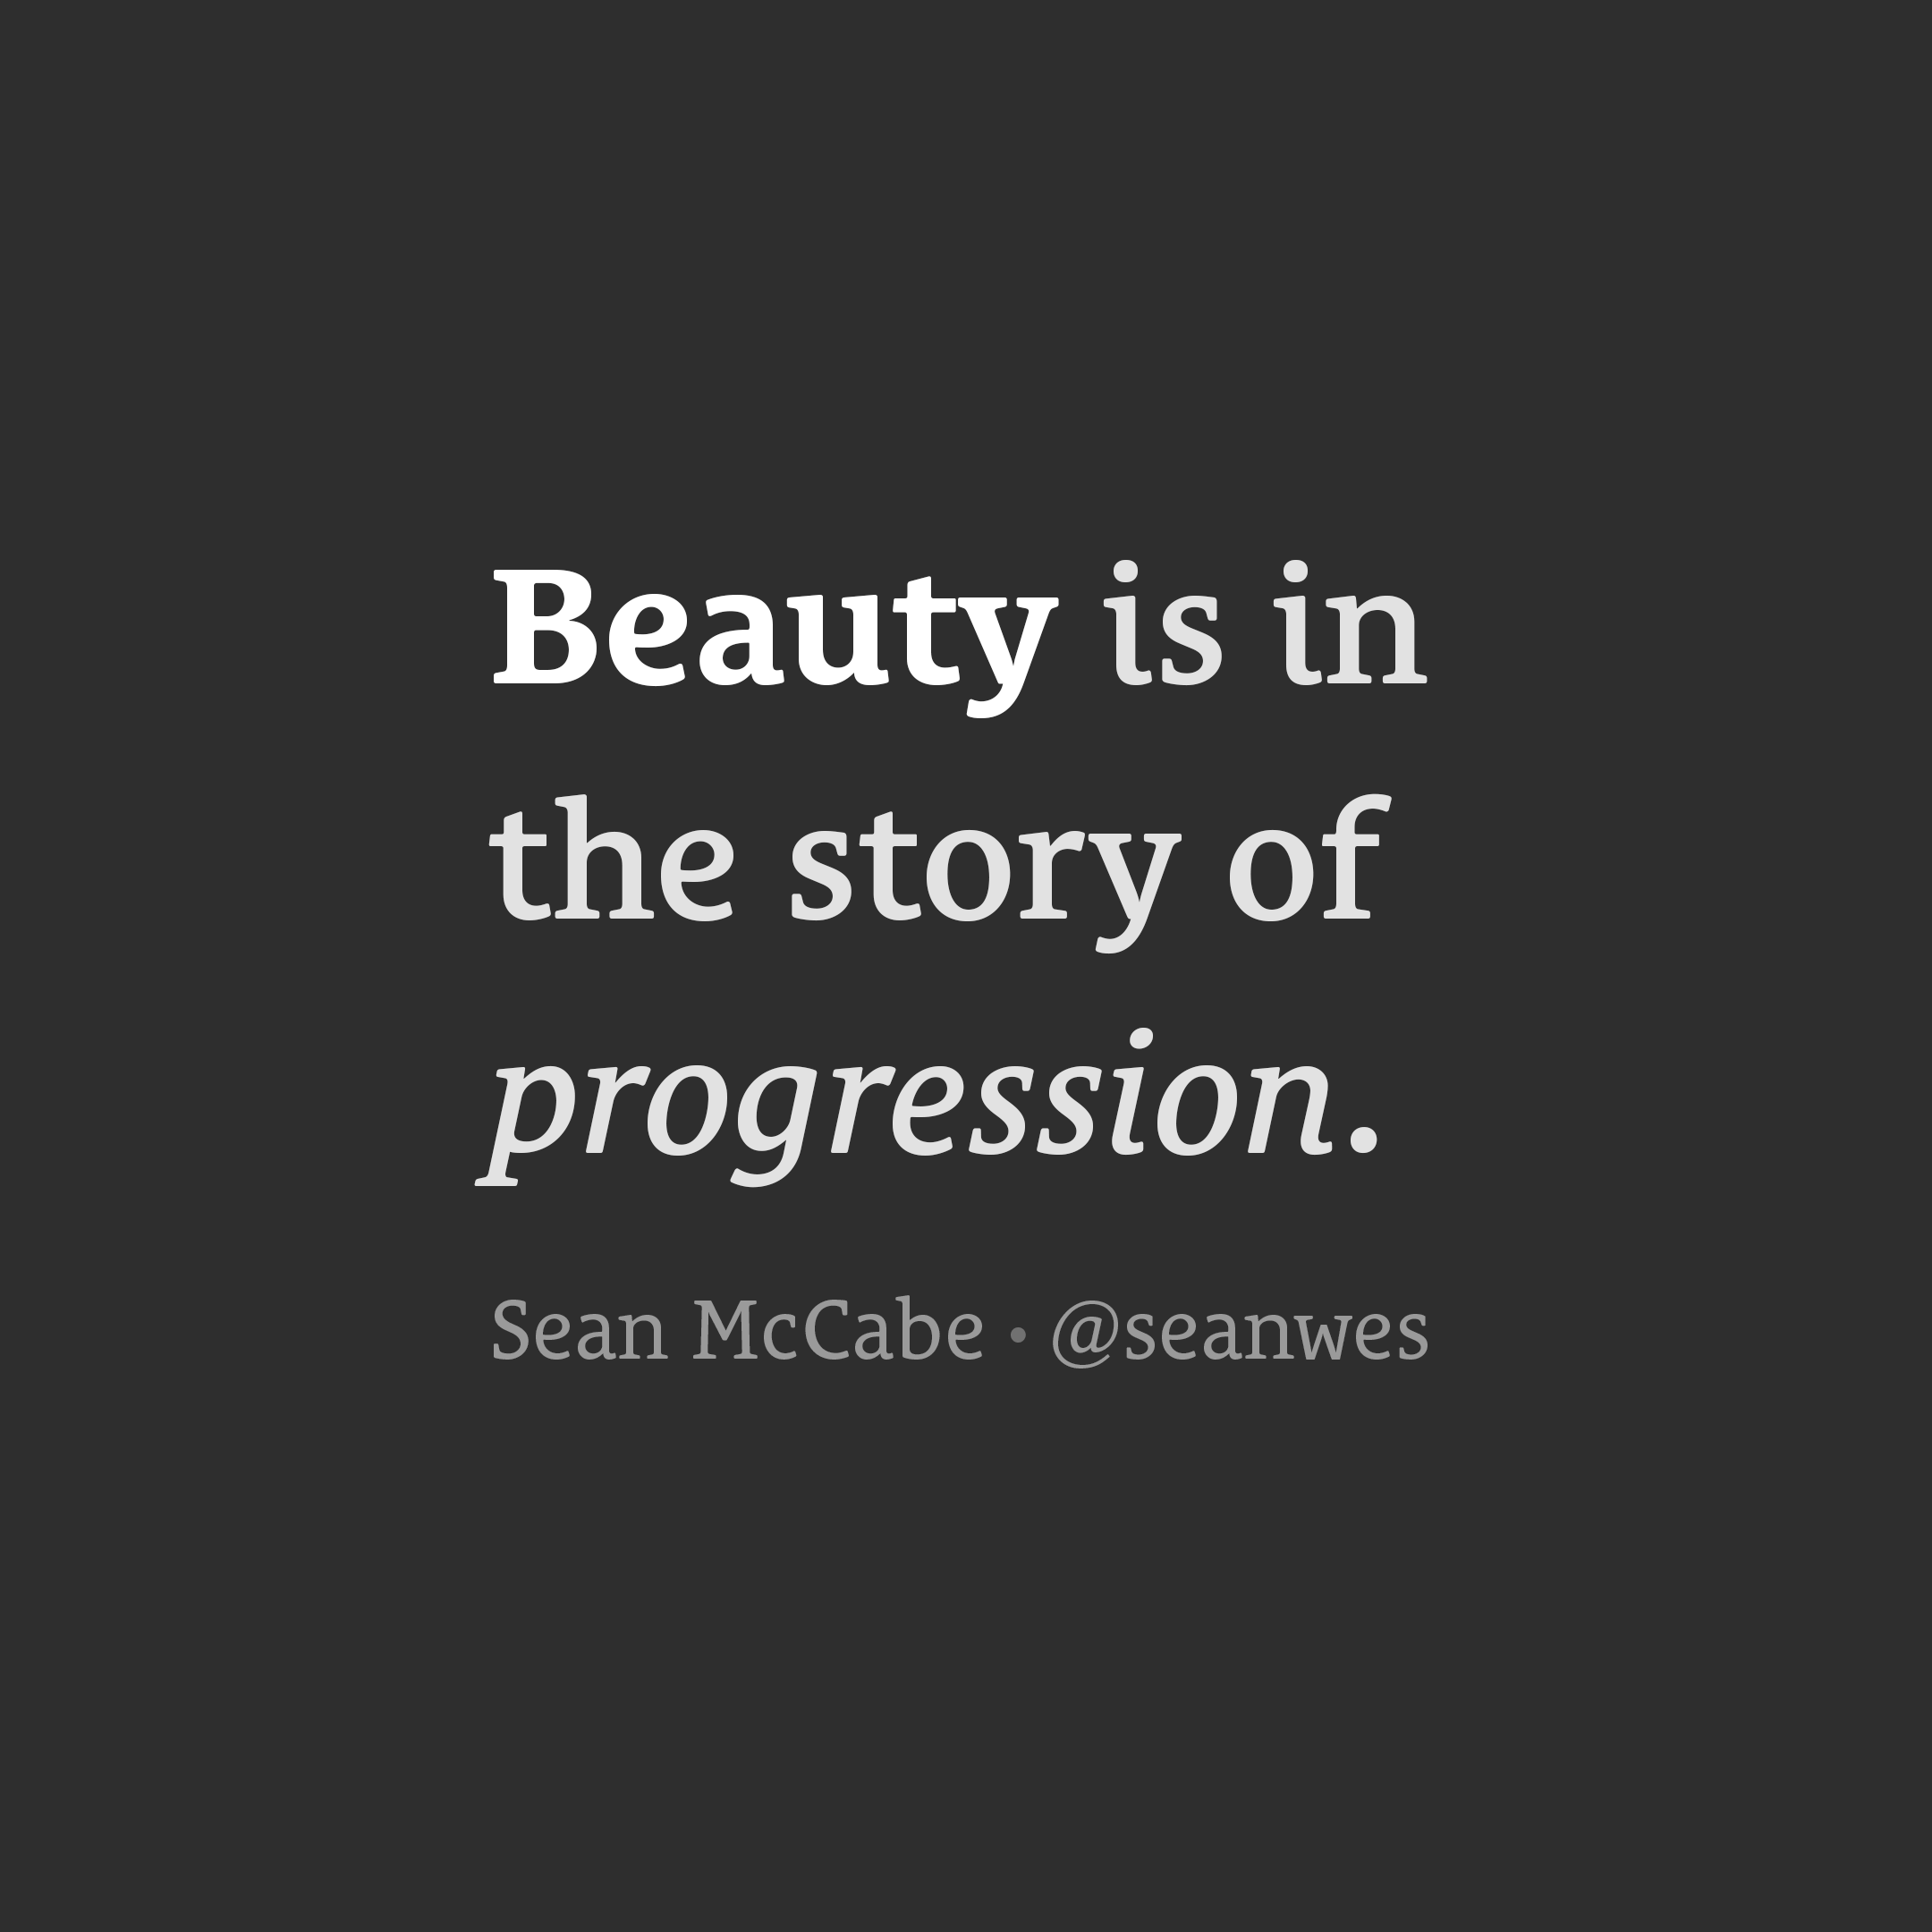 Beauty is in the story of progression.